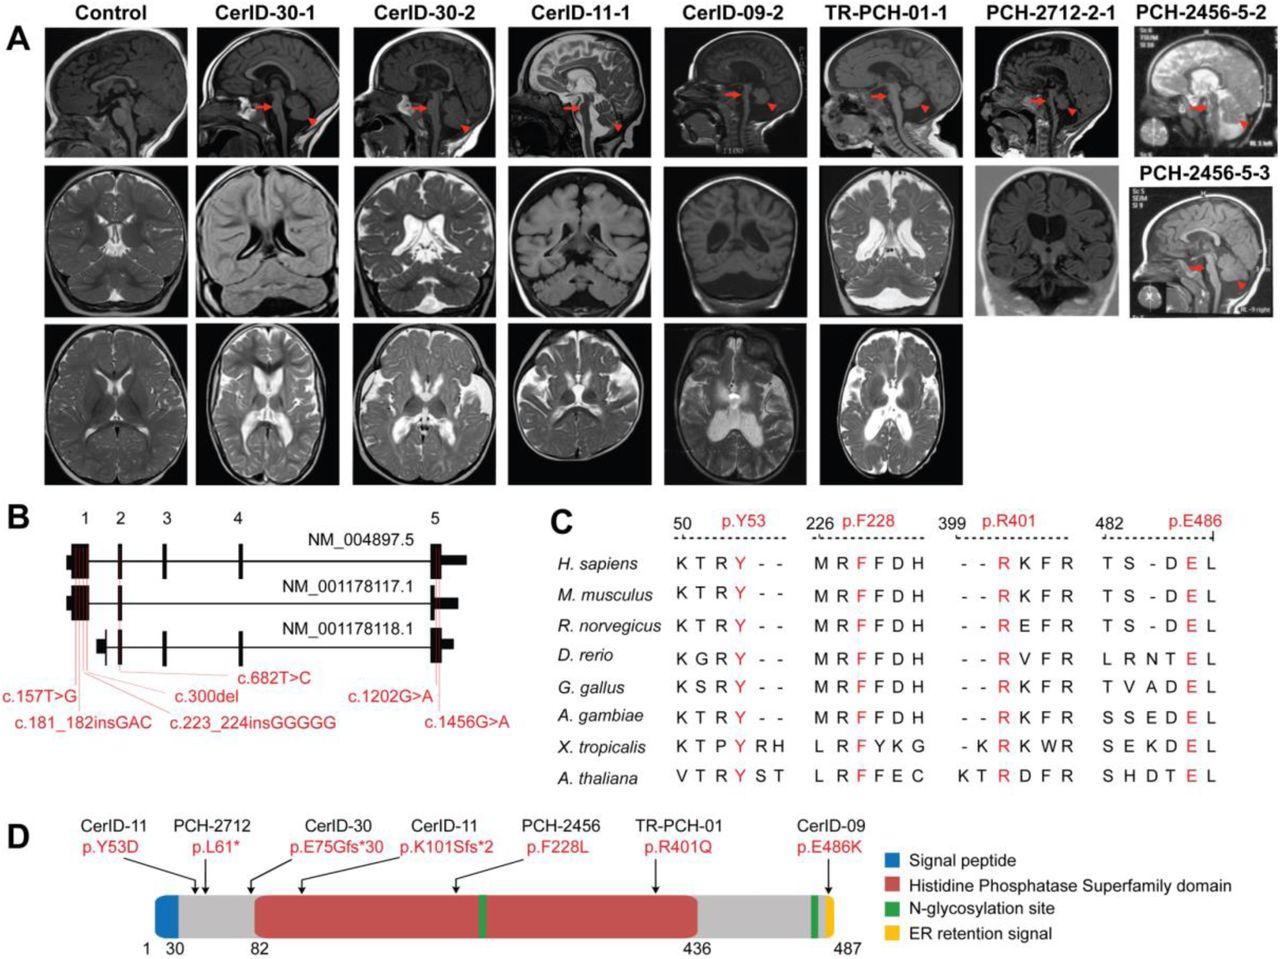 Biallelic mutations in MINPP1 cause a distinct PCH phenotype. (A) Midline sagittal (top), coronal (middle) and axial (bottom) brain MRIs of control and patients from families CerID-30, CerID-11, CerID-09 and TR-PCH-01 respectively. Only sagittal (top) and coronal (middle) brain MRIs were available for the patient from the family PCH-2712 and sagittal brain MRI for the patients from PCH-2456 (top and middle). Sagittal MRIs show variable degree of brain stem (arrow) and cerebellar atrophy/hypoplasia (arrowhead). ( B) Schematic representation of the MINPP1 transcripts: NM_004897.5, NM_001178117.1 and NM_001178118.1 respectively. Exon numbers for the longest isoform NM_004897.5 are indicated above the schematic representation. Mutations are shown relative to their cDNA (NM_004897.5) position. ( C) Multiple-sequence alignment of MINPP1 from different species. Variant amino-acid residues p.Y53, p.F228, p.R401 and p.E486 are evolutionarily conserved. ( D) Linear schematic representation of MINPP1, showing the position of mutations with respect to predicted protein domains. Abbreviations used: Endoplasmic reticulum (ER).